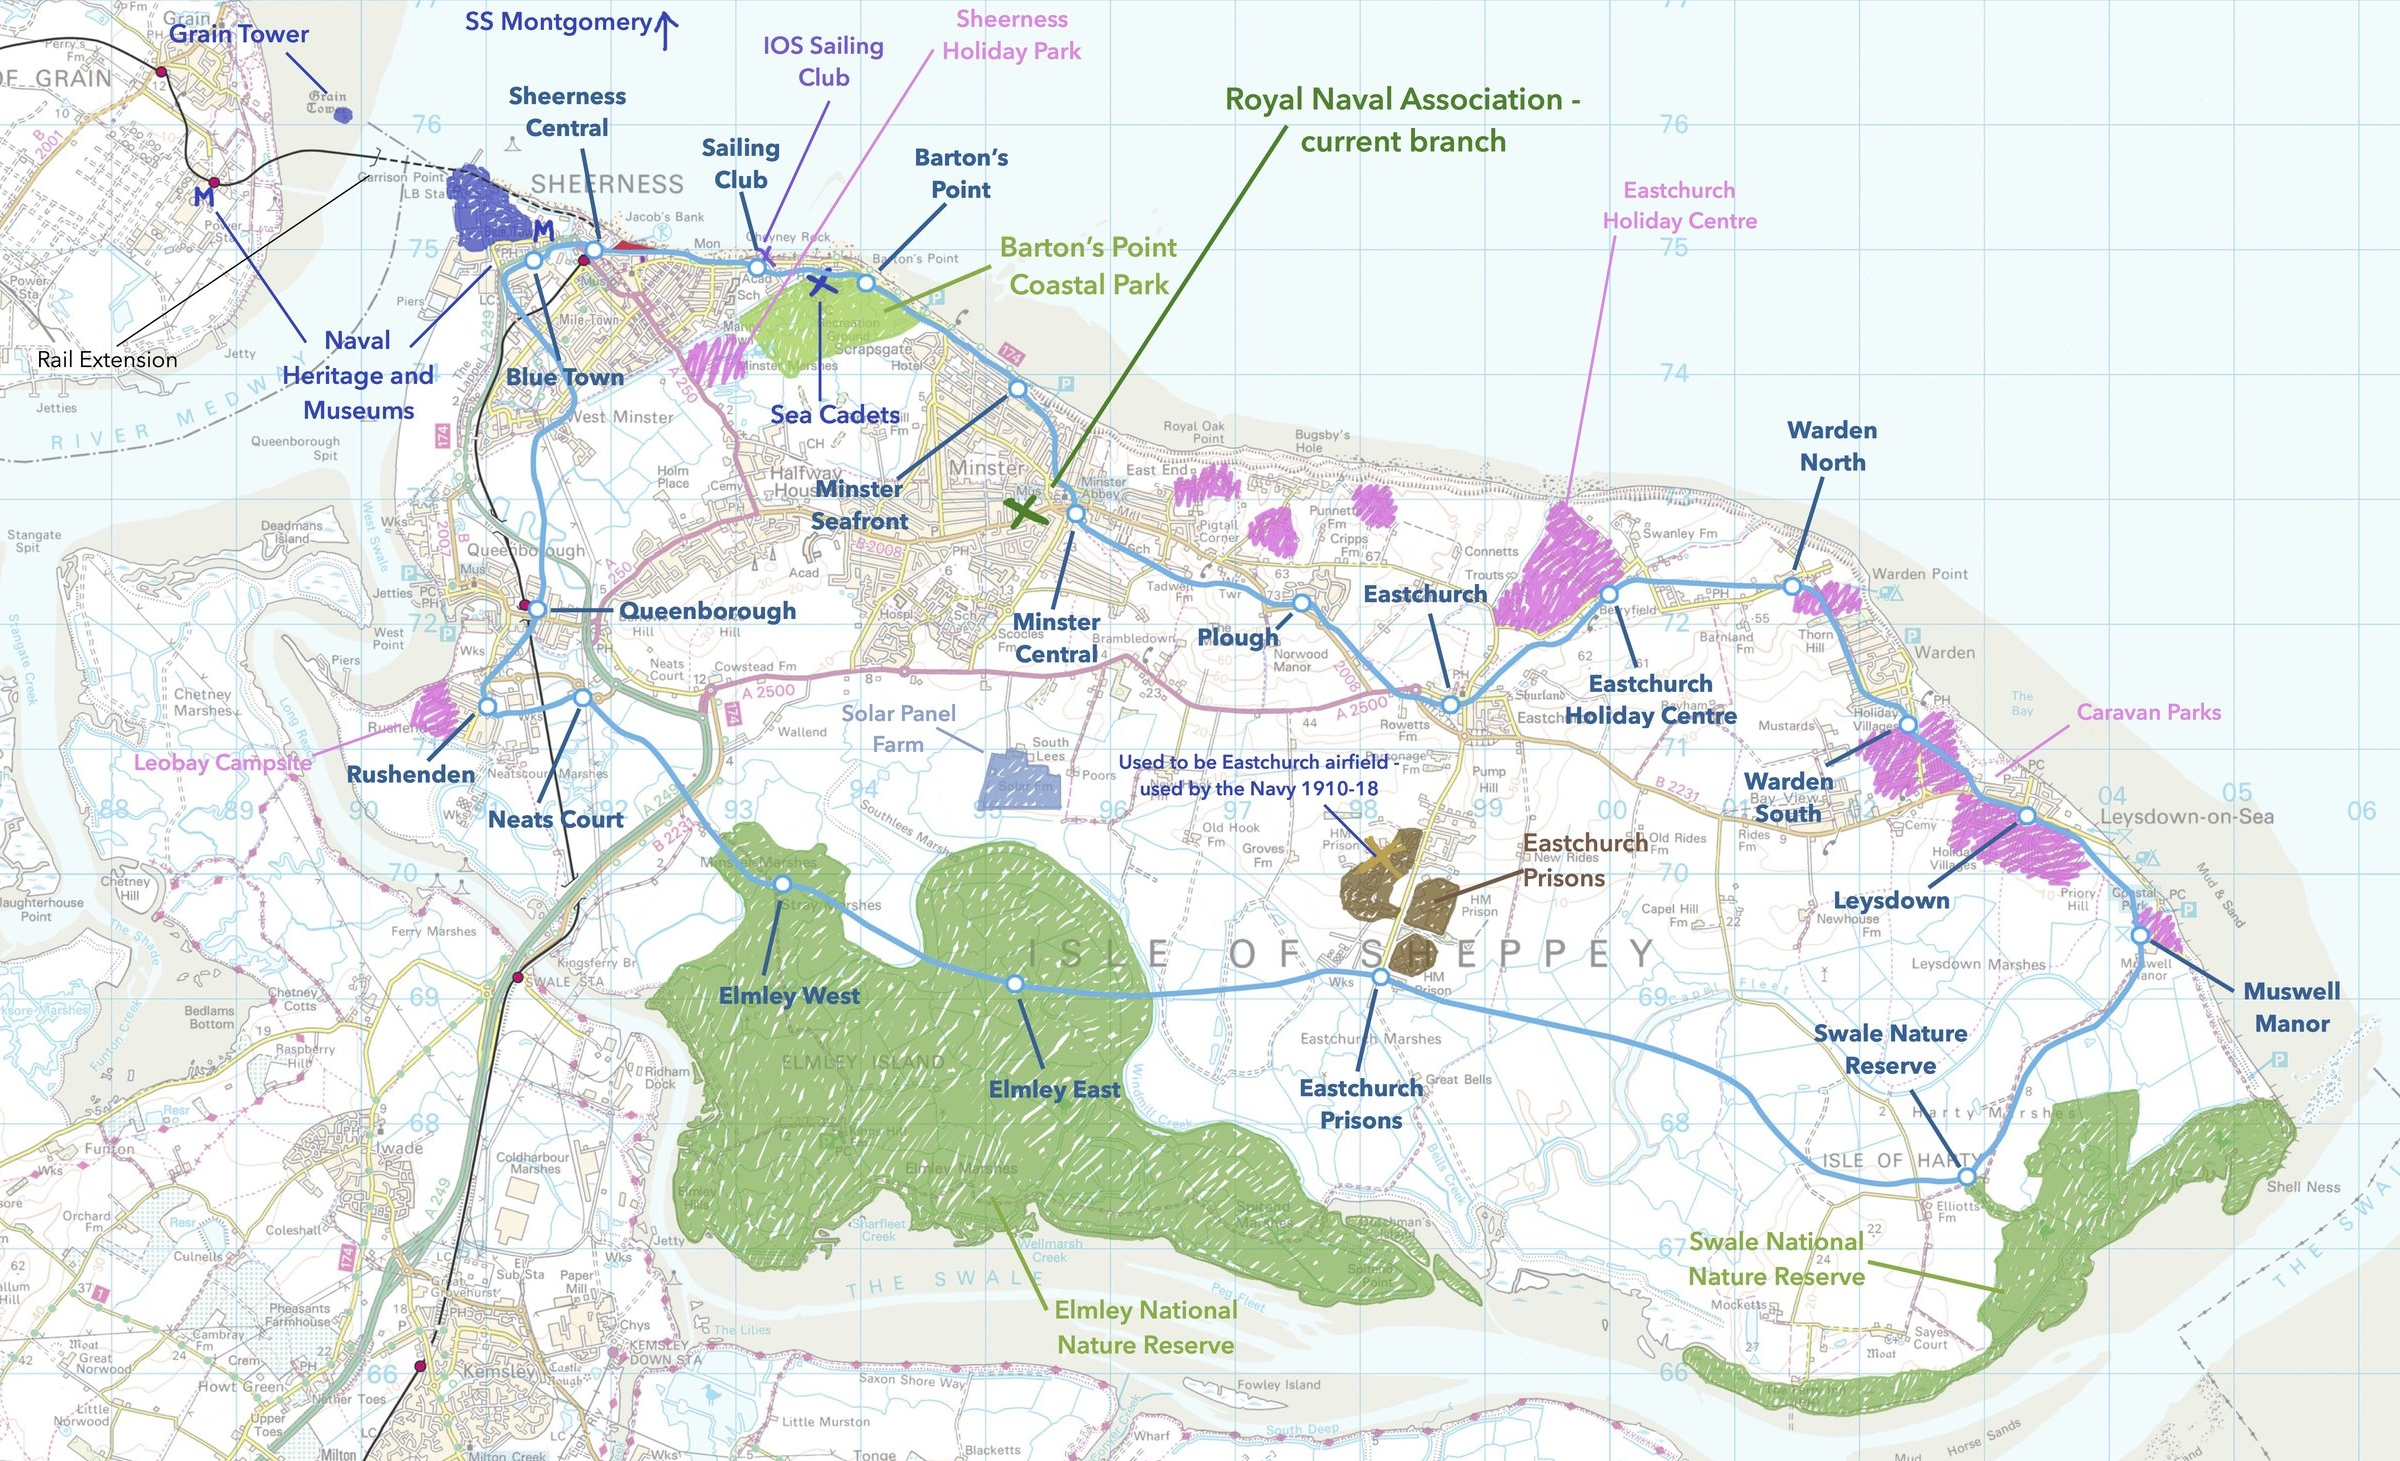 Annotated OS Map, showing the route of the SLR and important places.